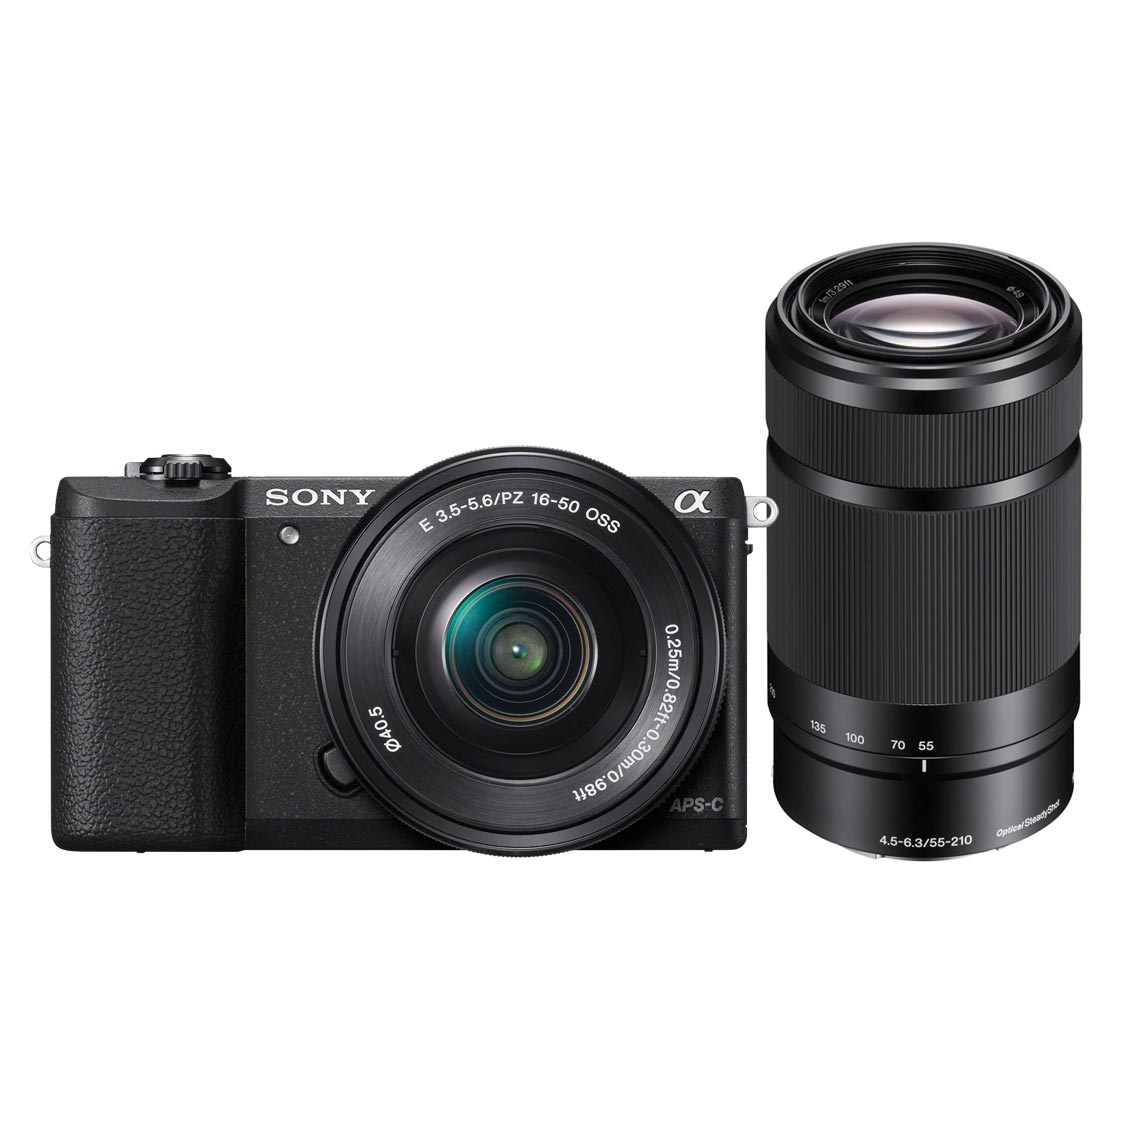 Sony A6000 Camera (black) with 16-50mm and 55-210mm Lenses